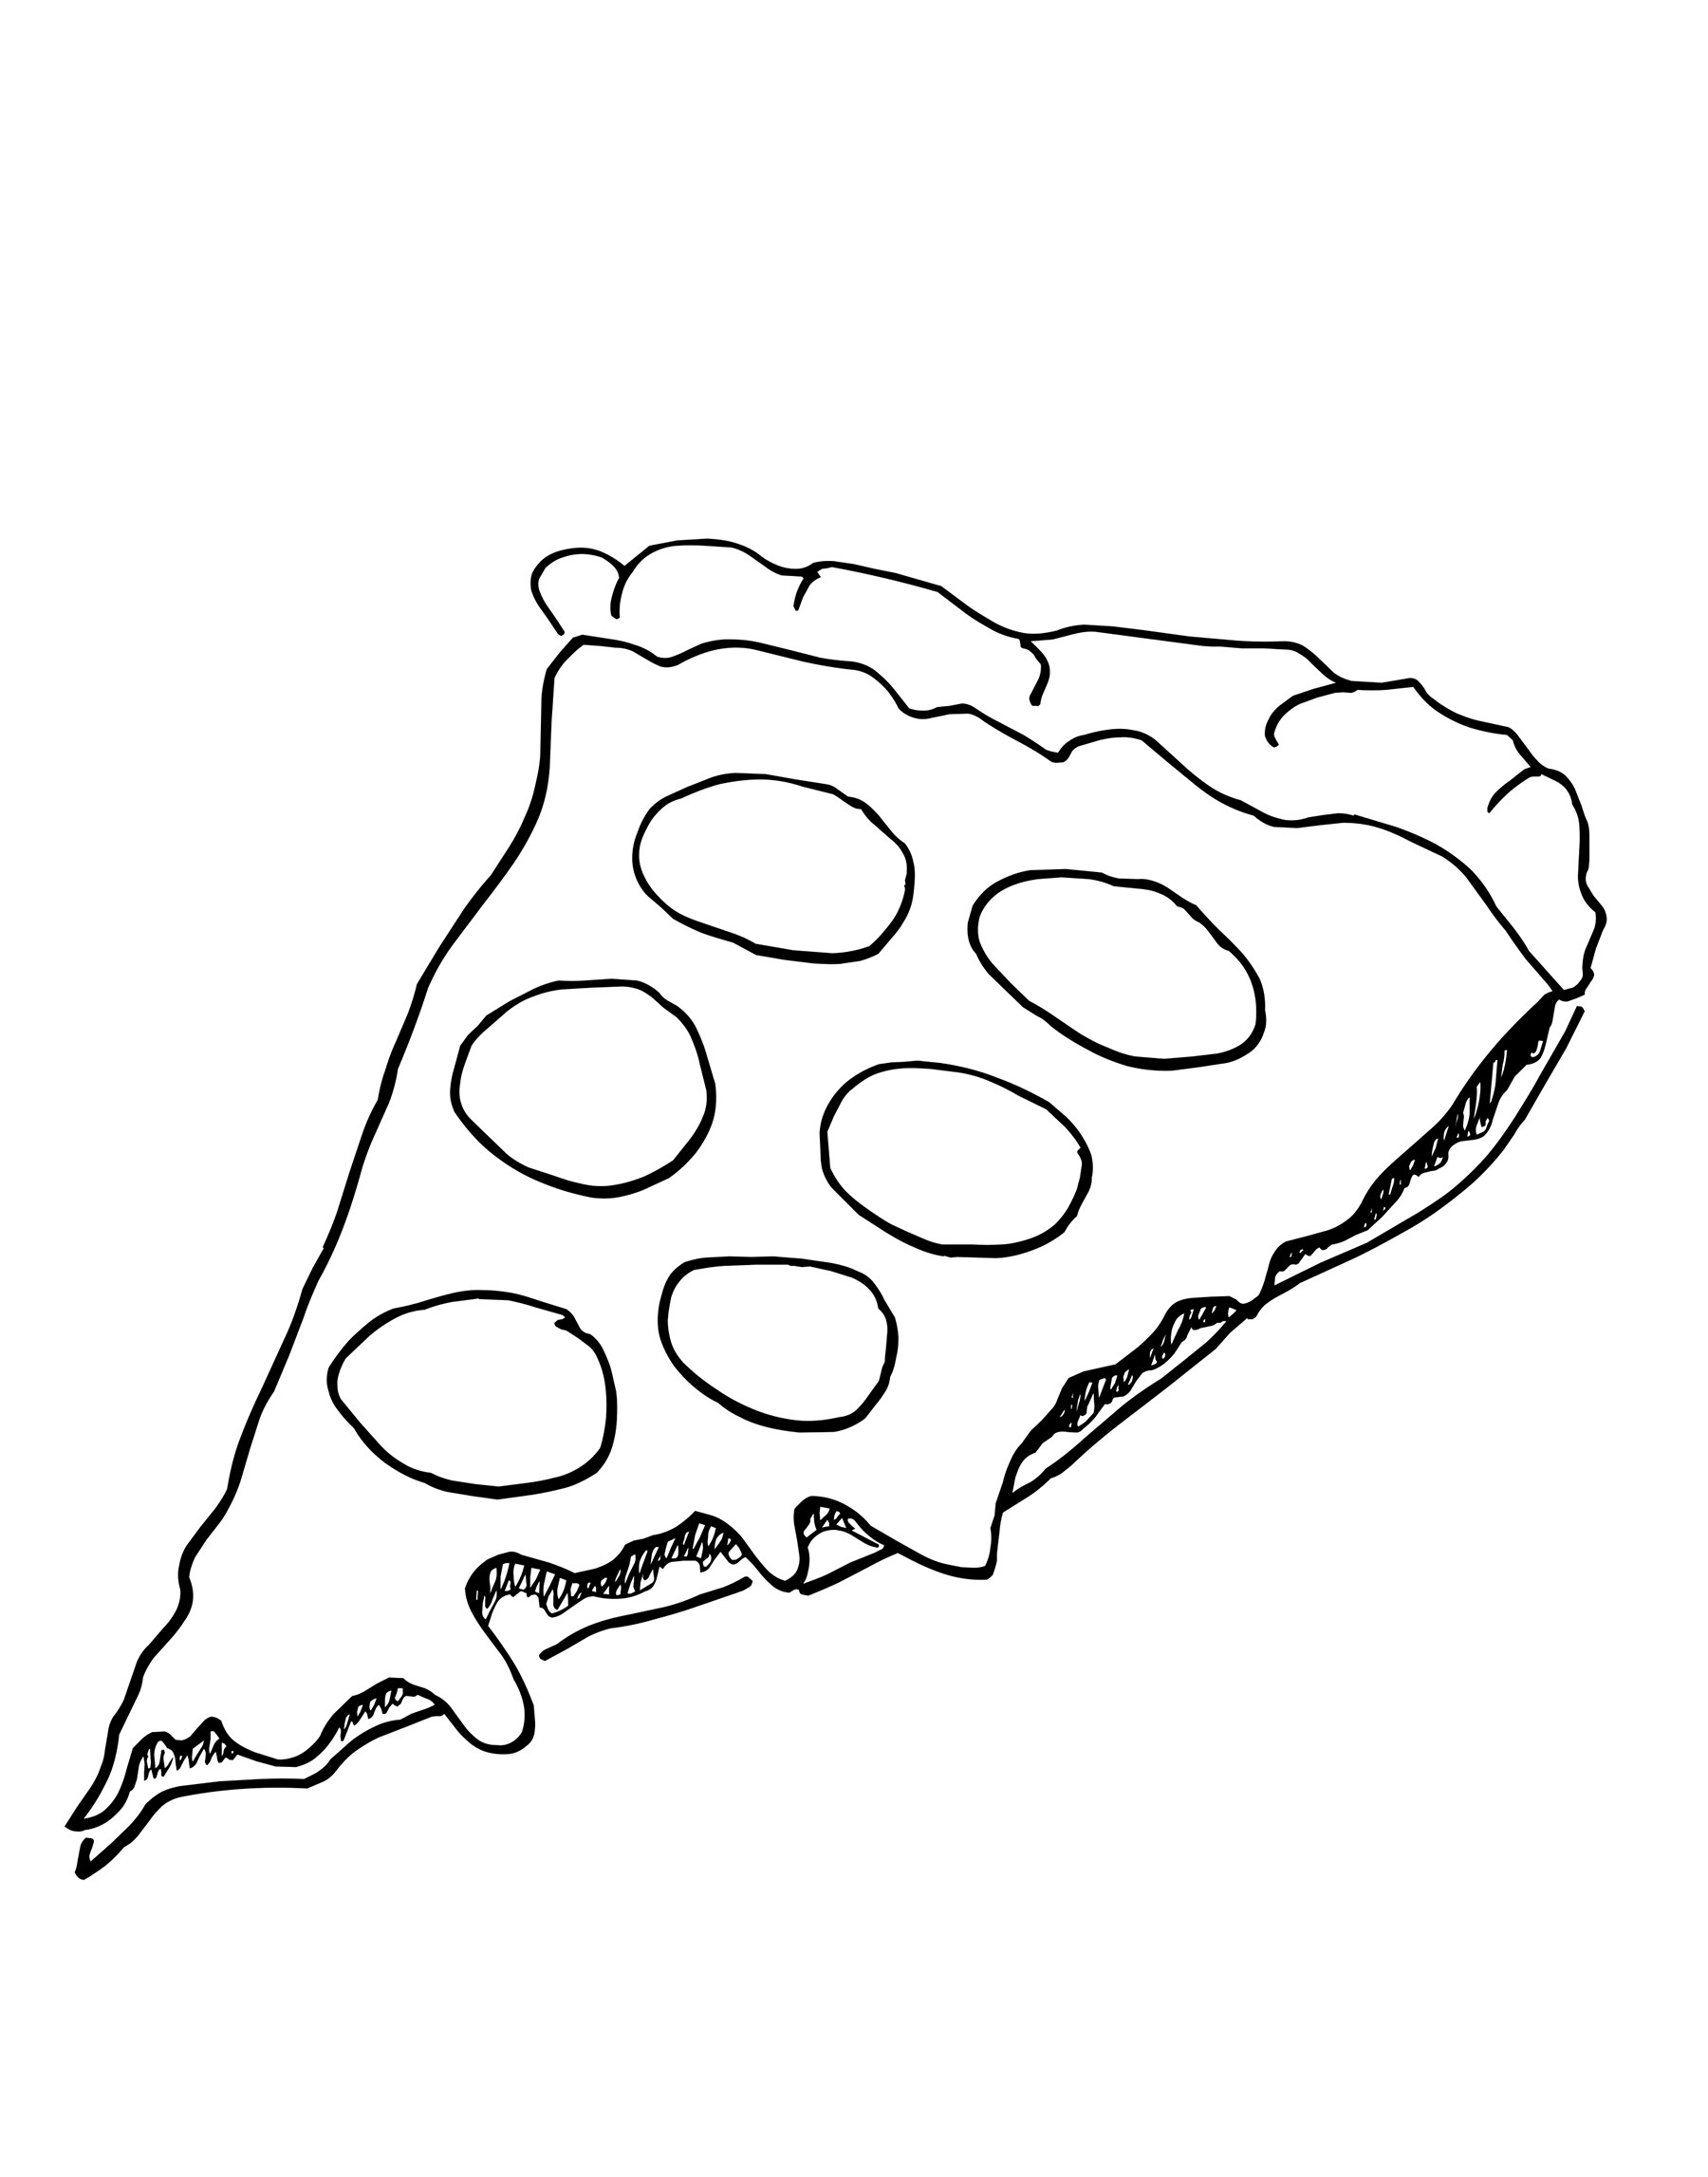 1800x2294 Coloring Pages Of Food Pizza Free For Kids To Print And Color